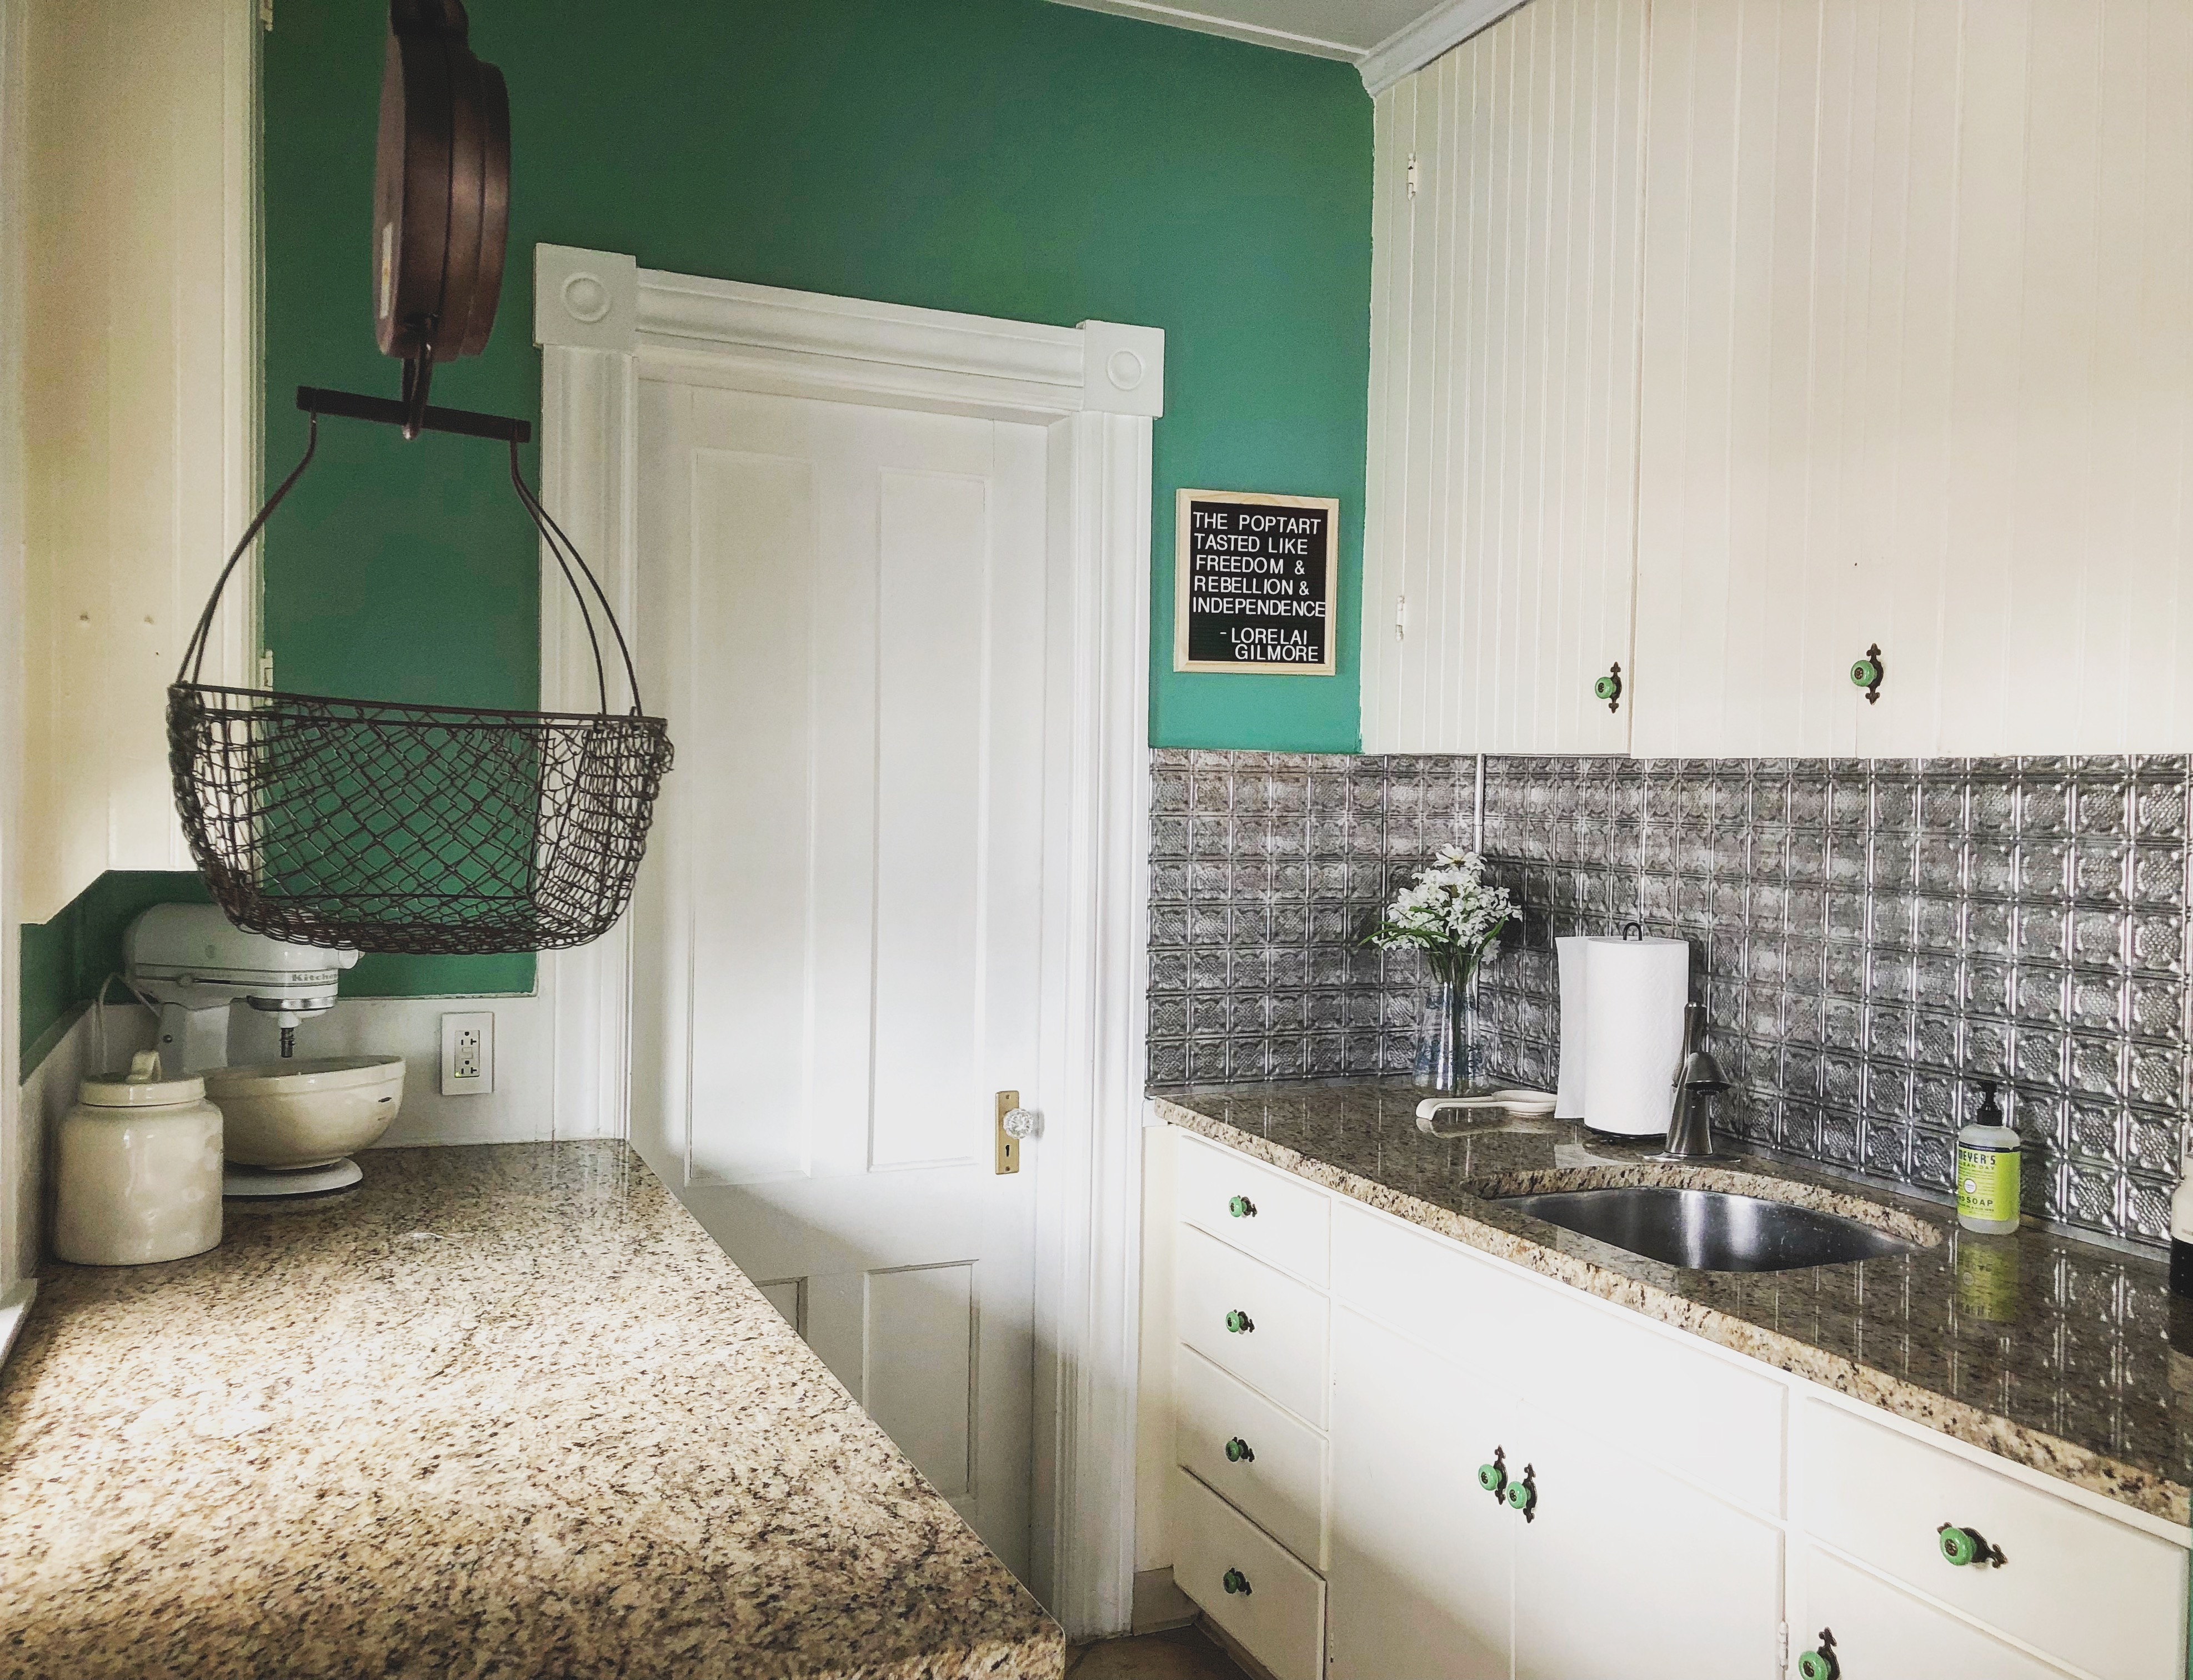 While most butler's pantries are used for storage, this one is used as a baking space.